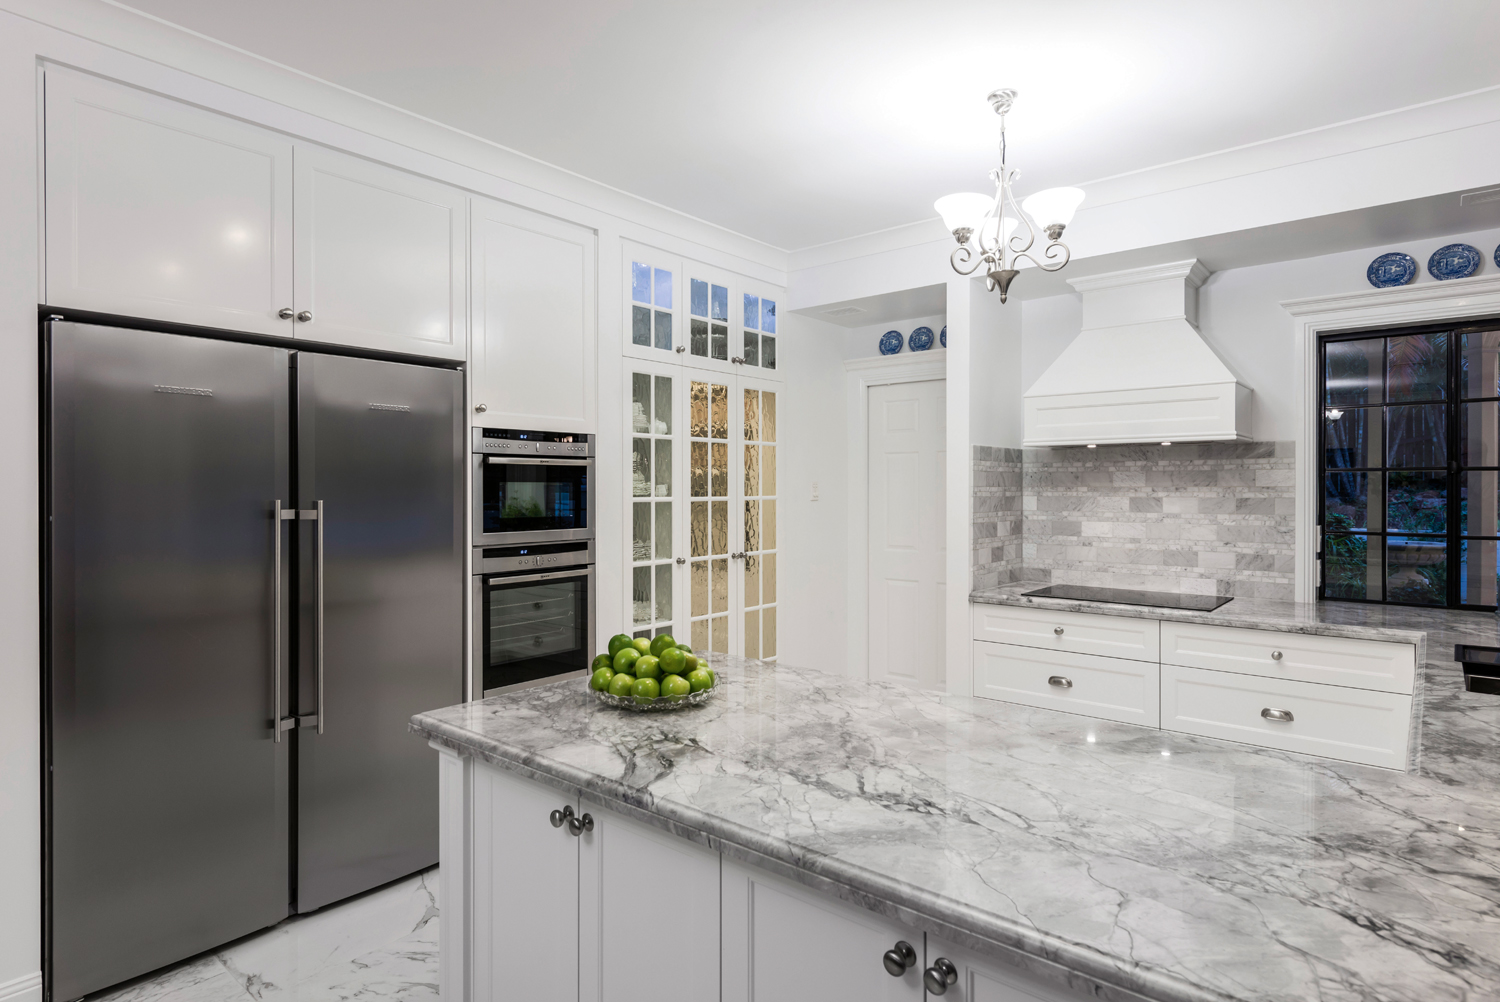 French elegance: chateau-style kitchen